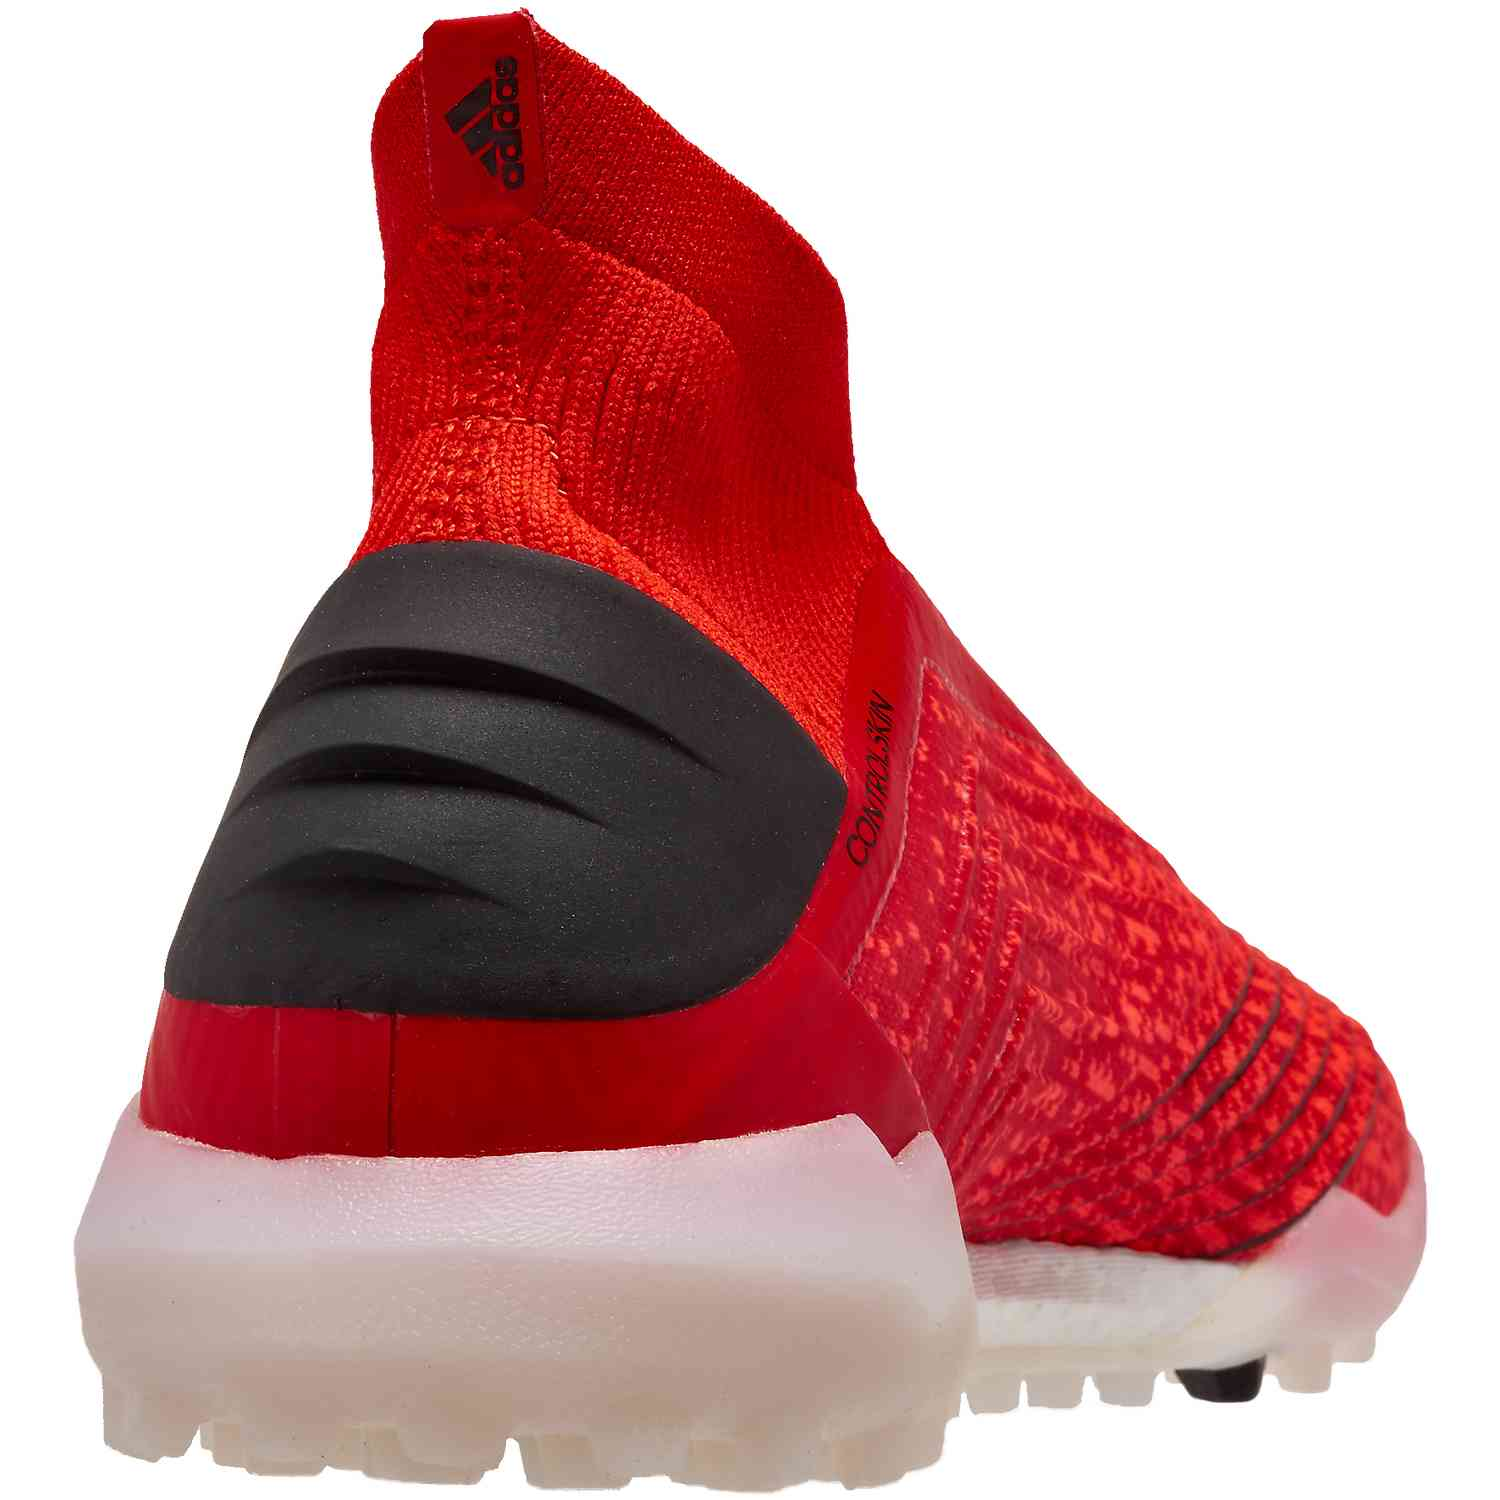 outlet info for great deals adidas Predator Tango 19+ Turf Shoes - Initiator Pack ...